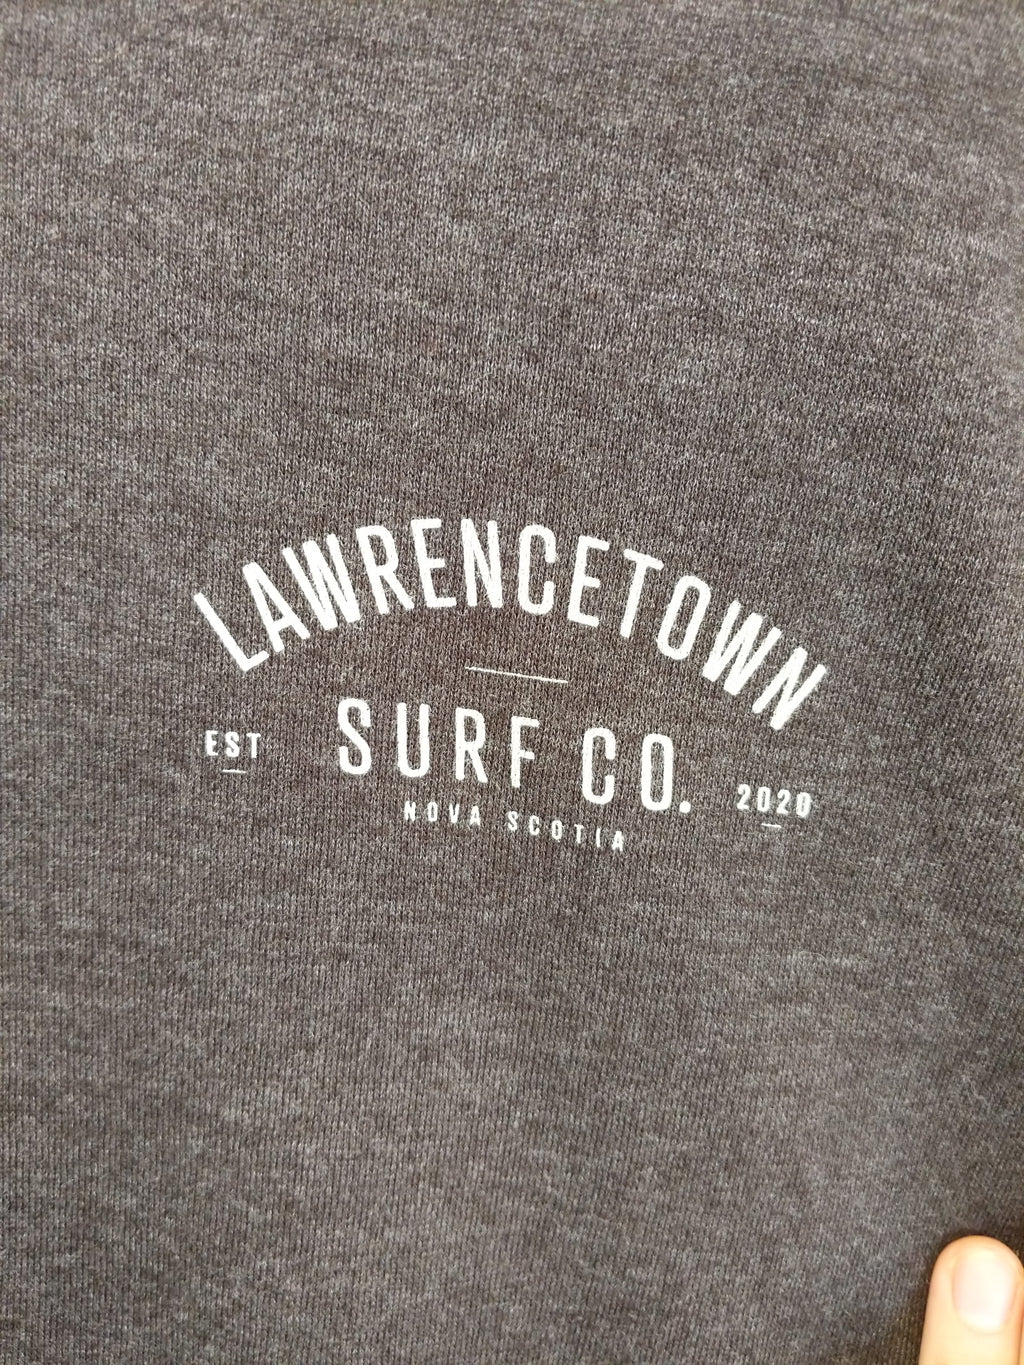 Lawrencetown Surf Co. Heavy Weight Hoodie - Charcoal Grey / White